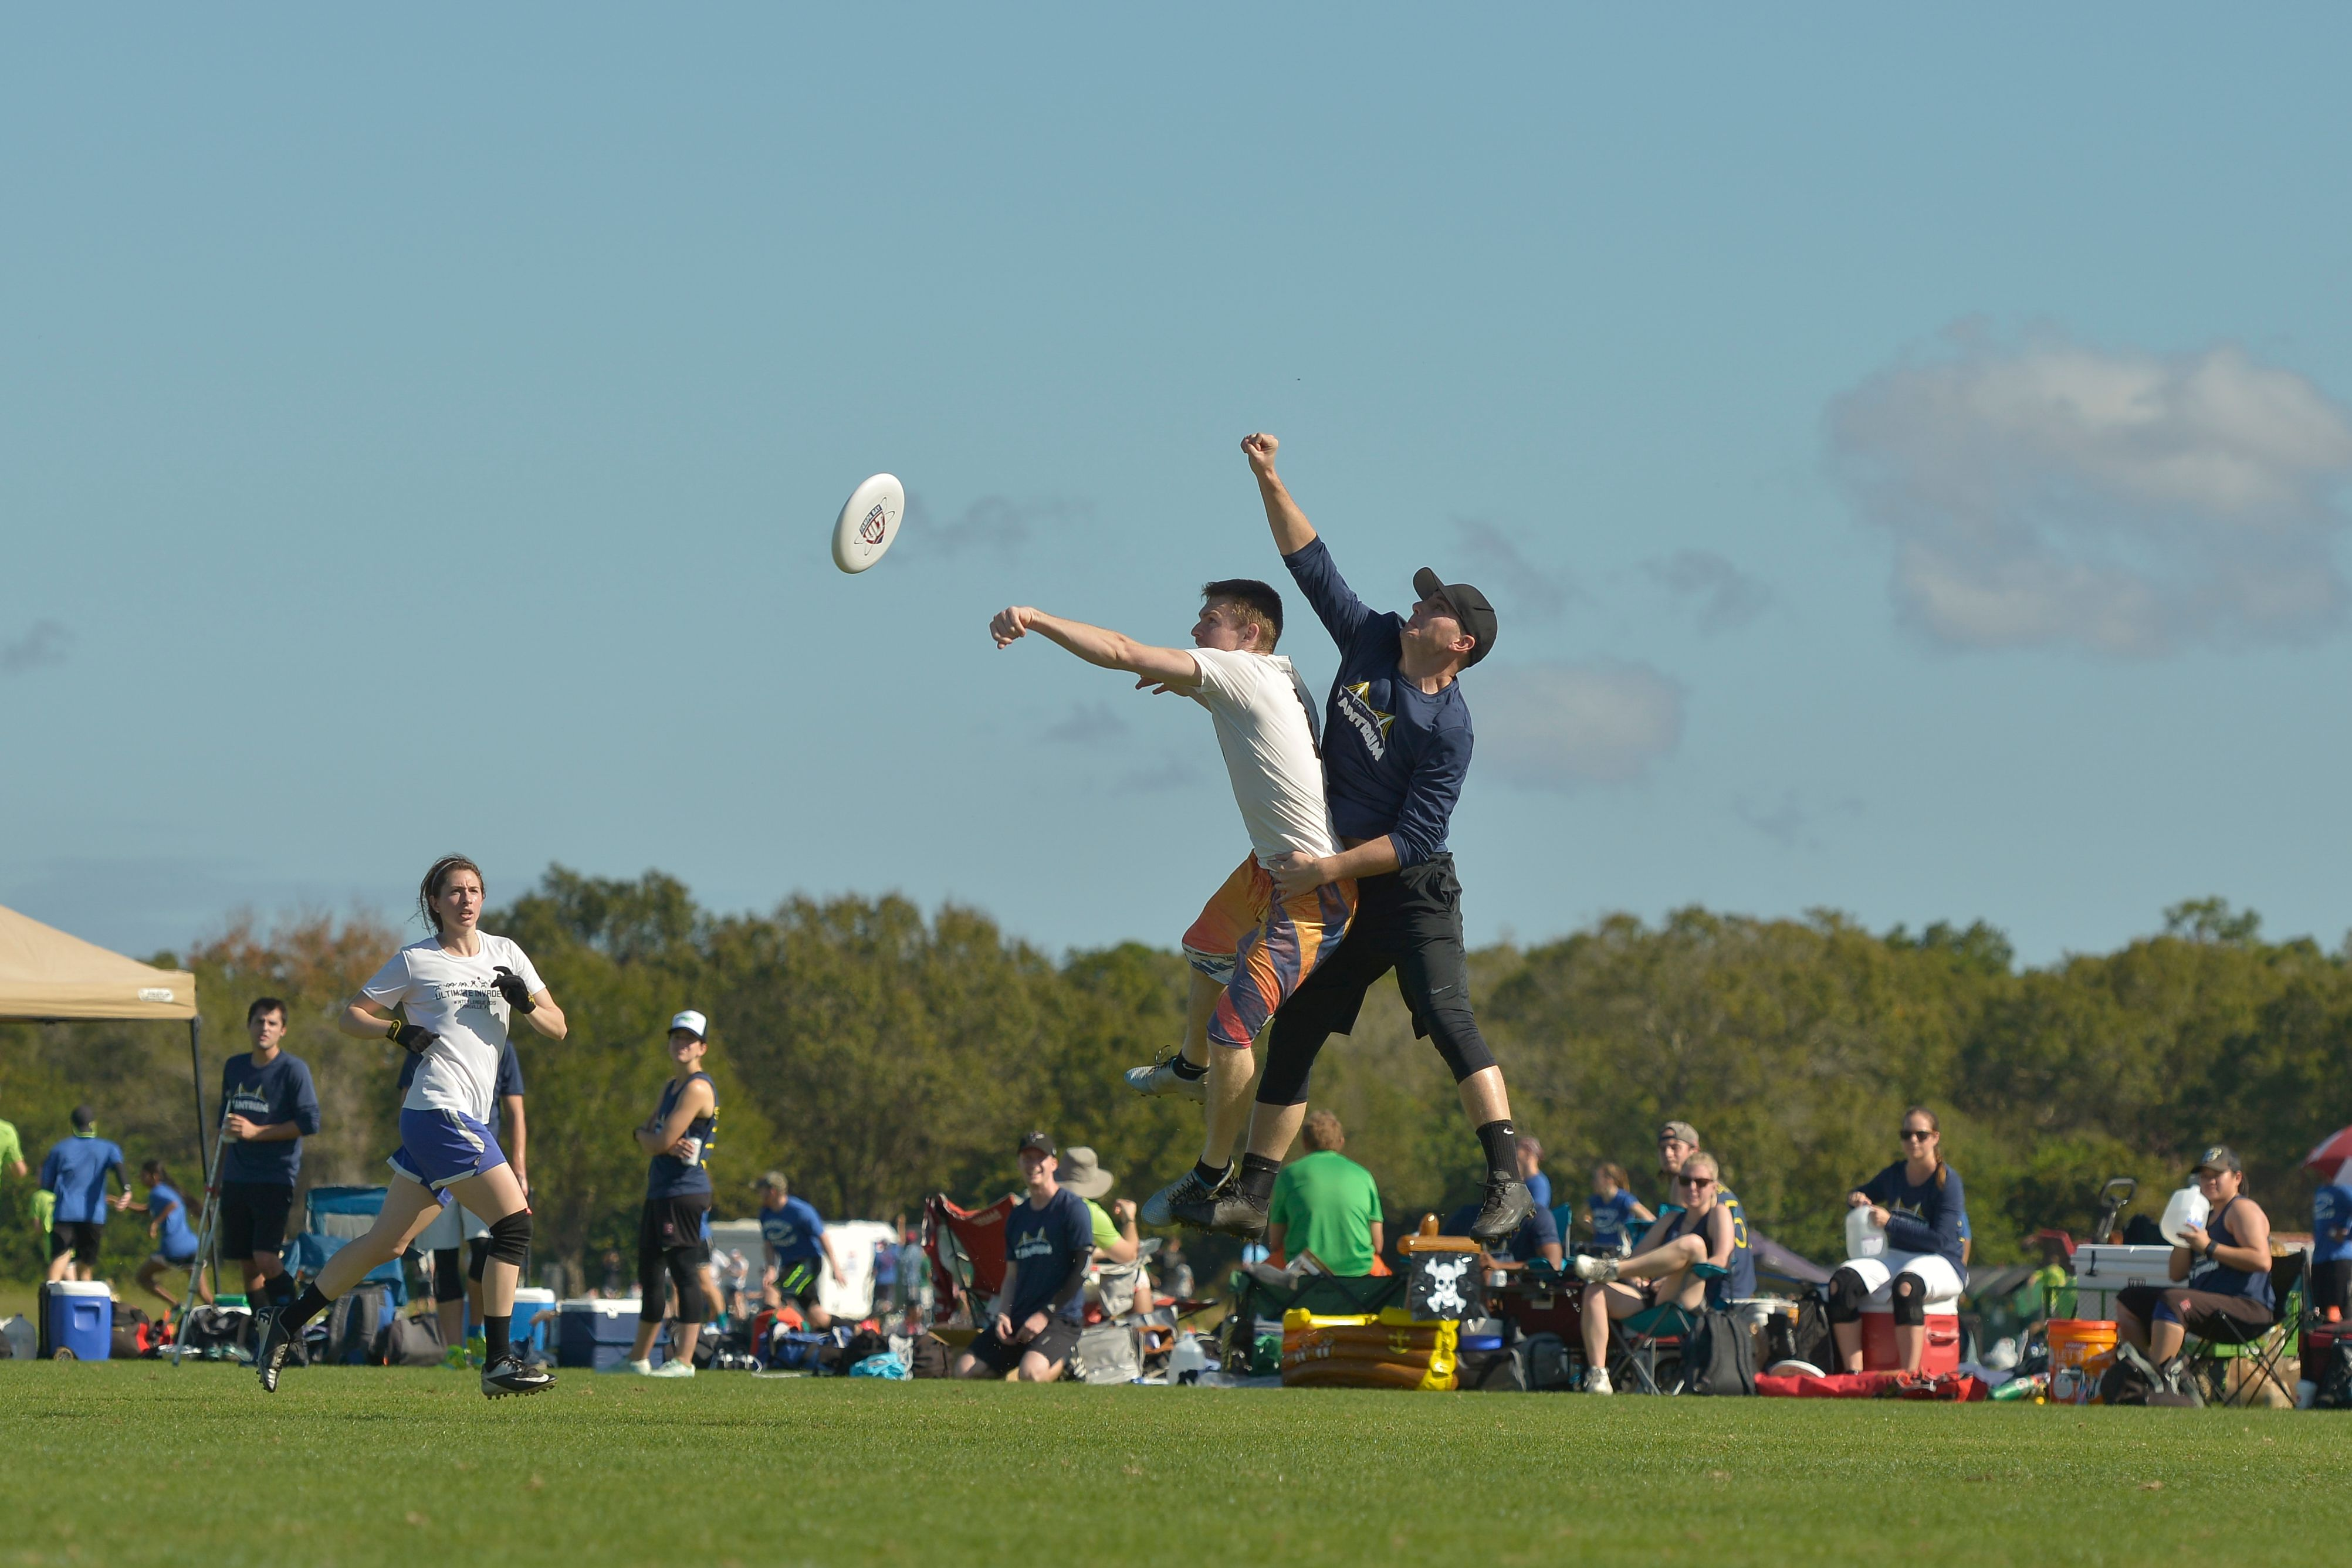 Frisbee Sporting Event